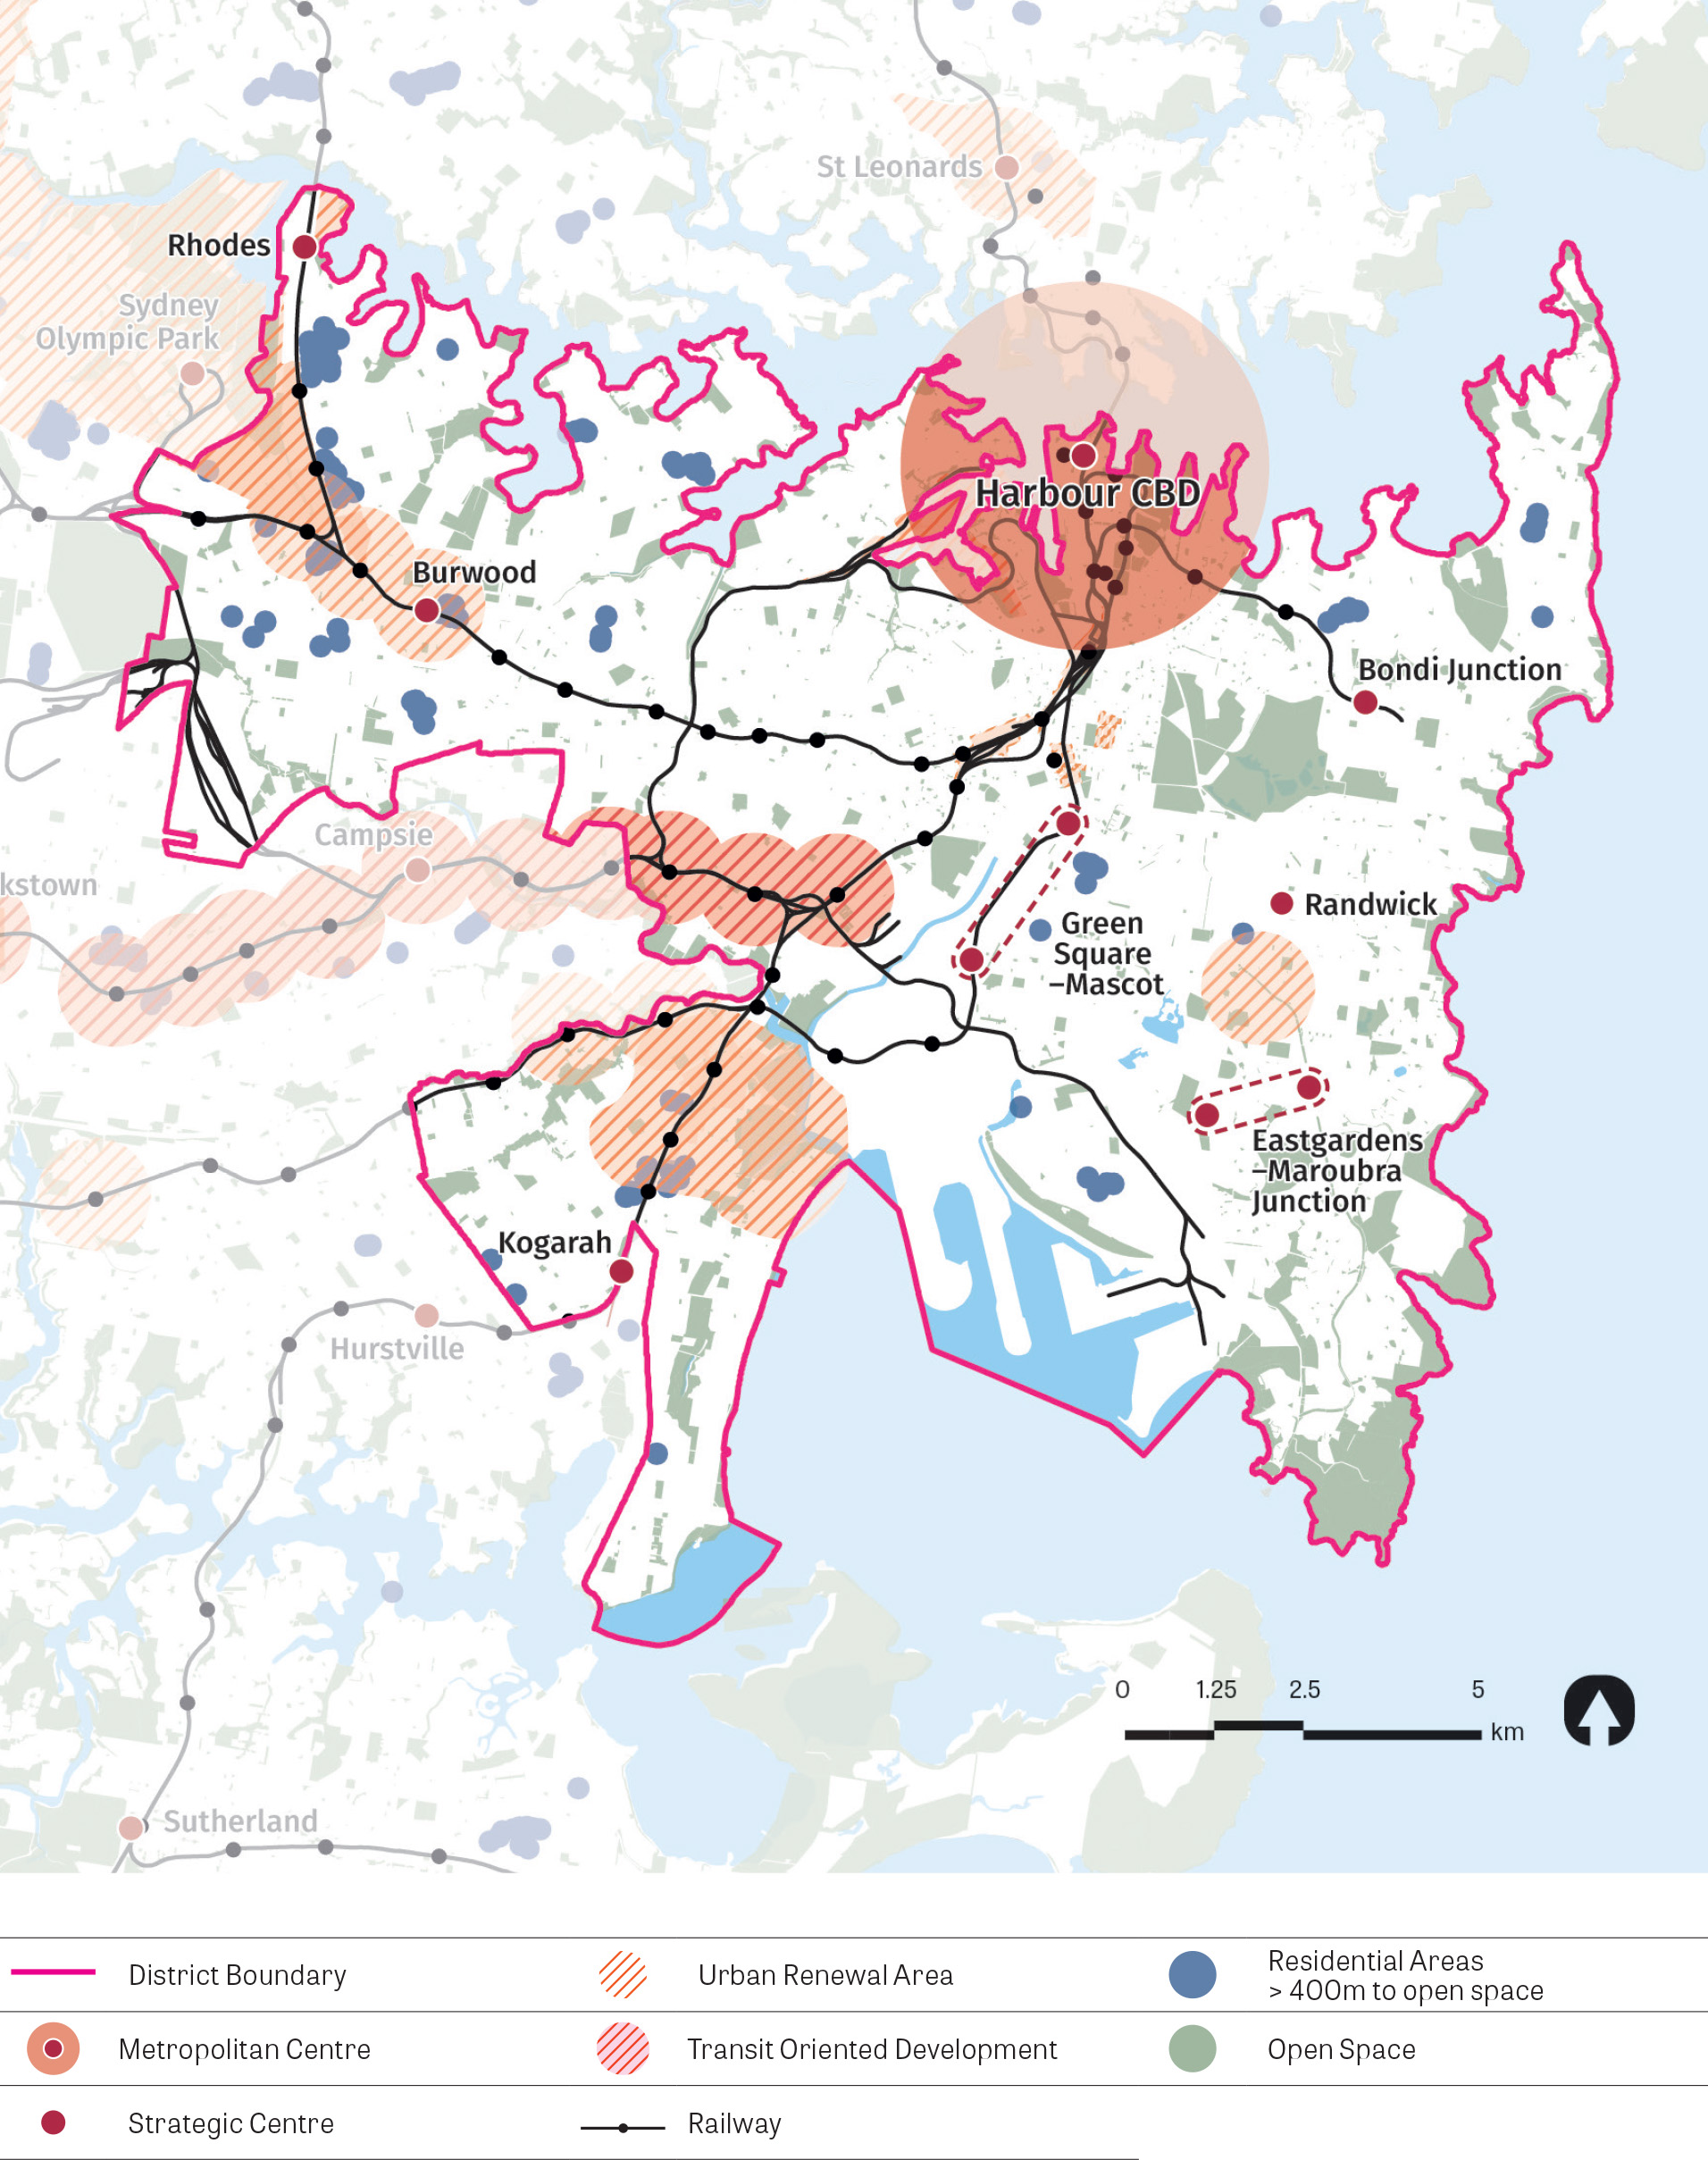 A stylised map showing access to open space in the district. The map shows residential areas greater than 400m to open space, strategic centres, infill priority precinct/urban renewal corridors, transit orientated development, railways and open space.